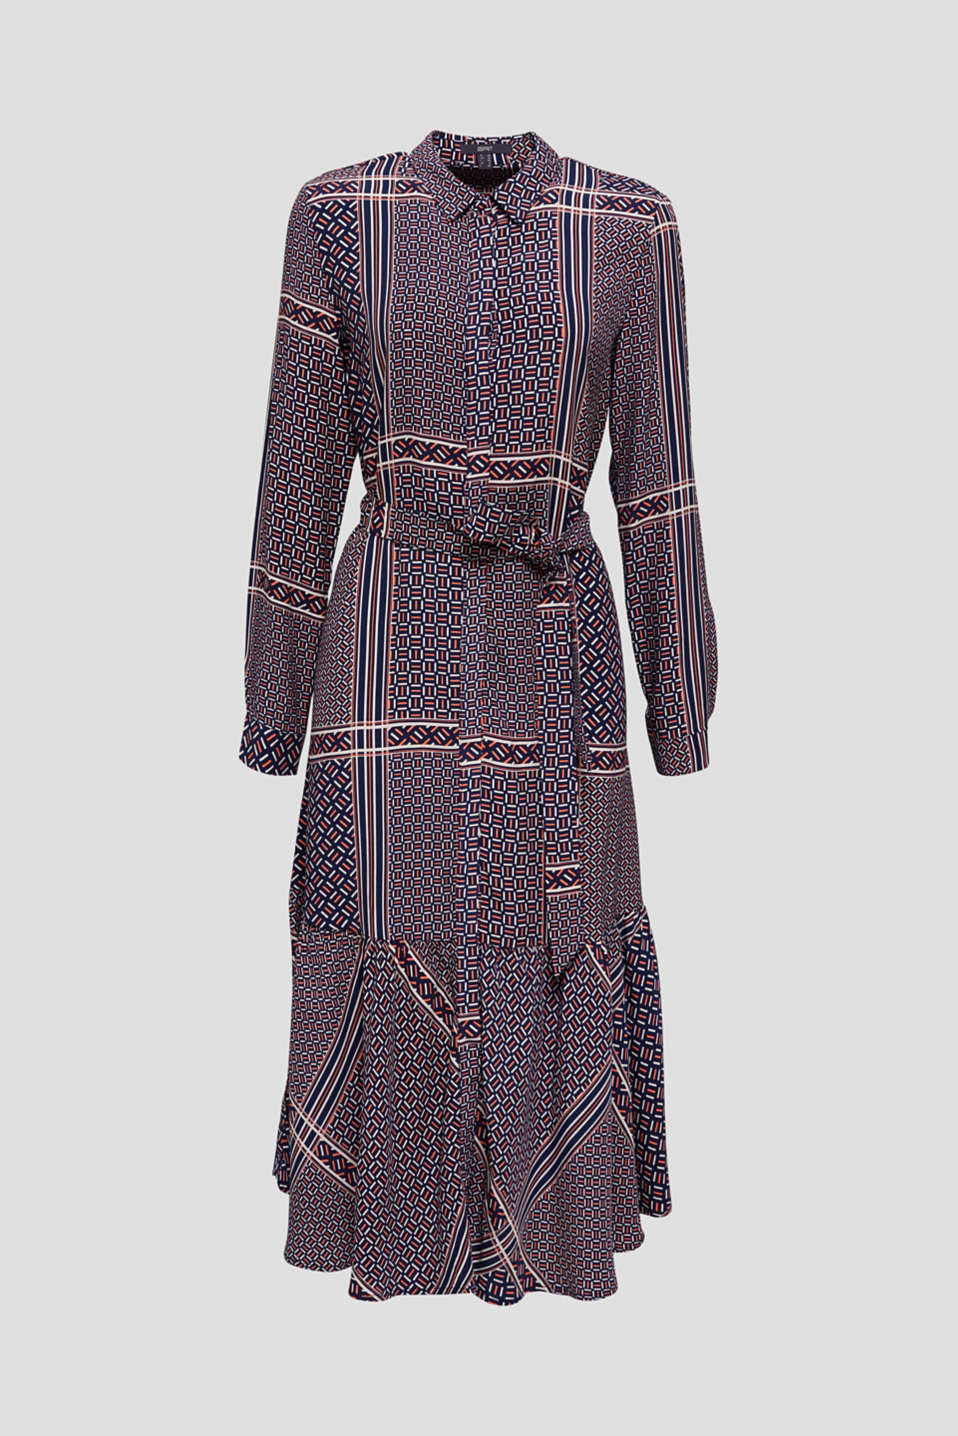 Midi dress with a modern tribal print, NAVY, detail image number 6